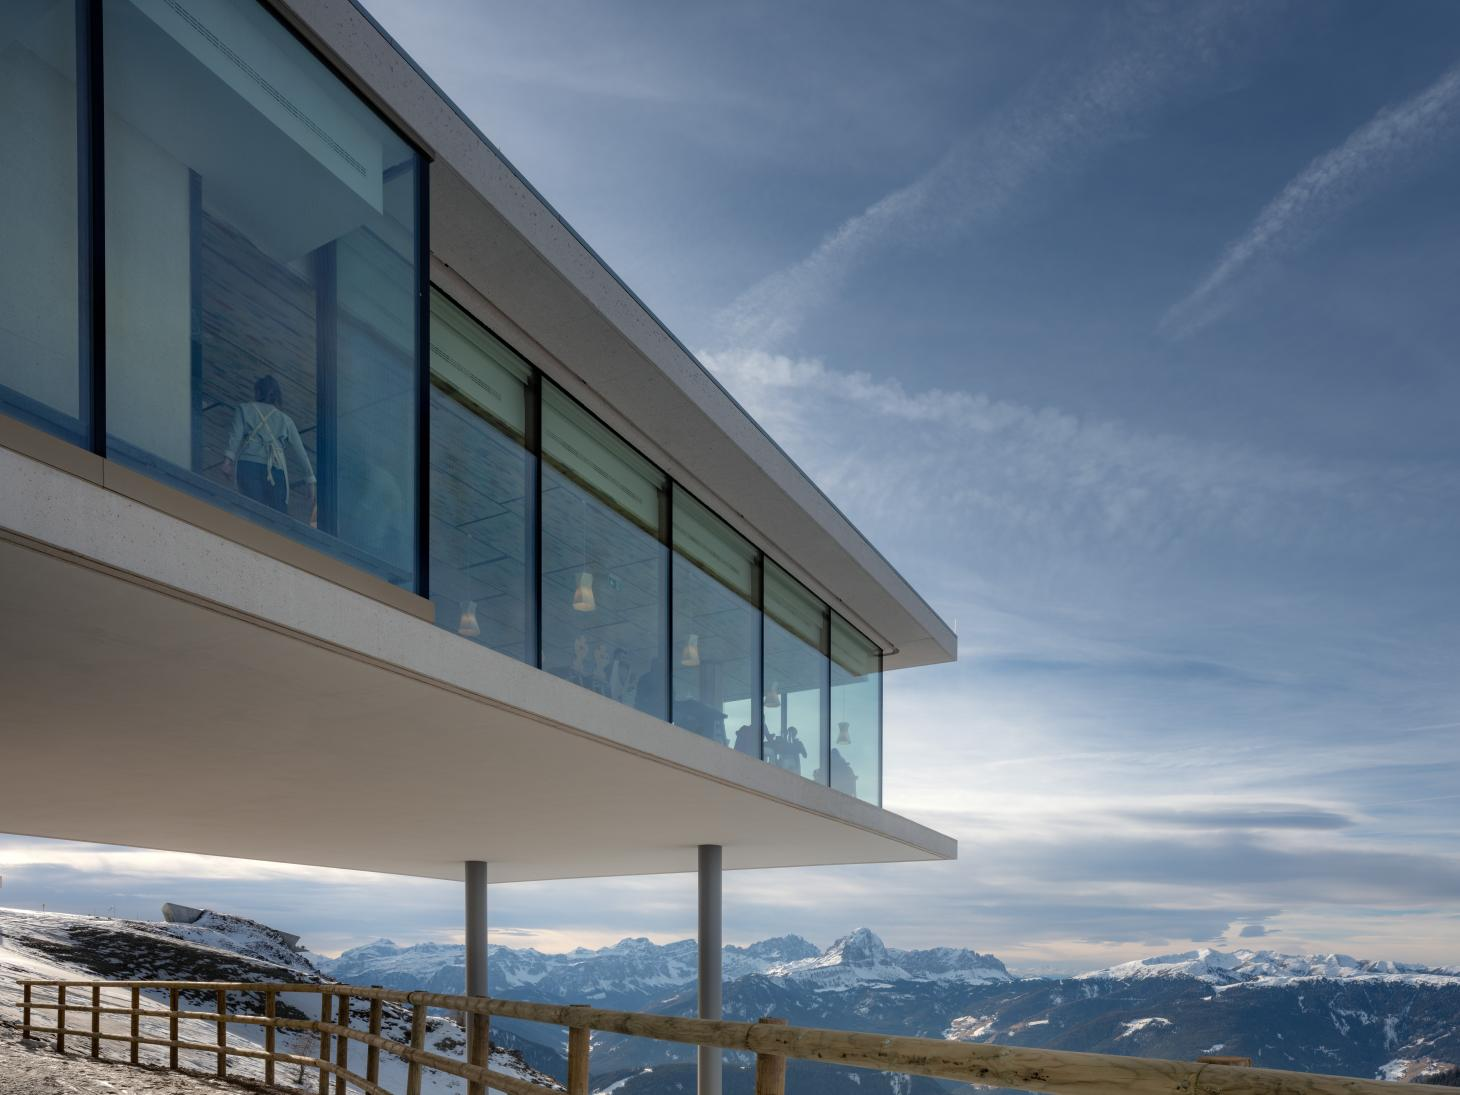 Lumen photography gallery in South Tyrol